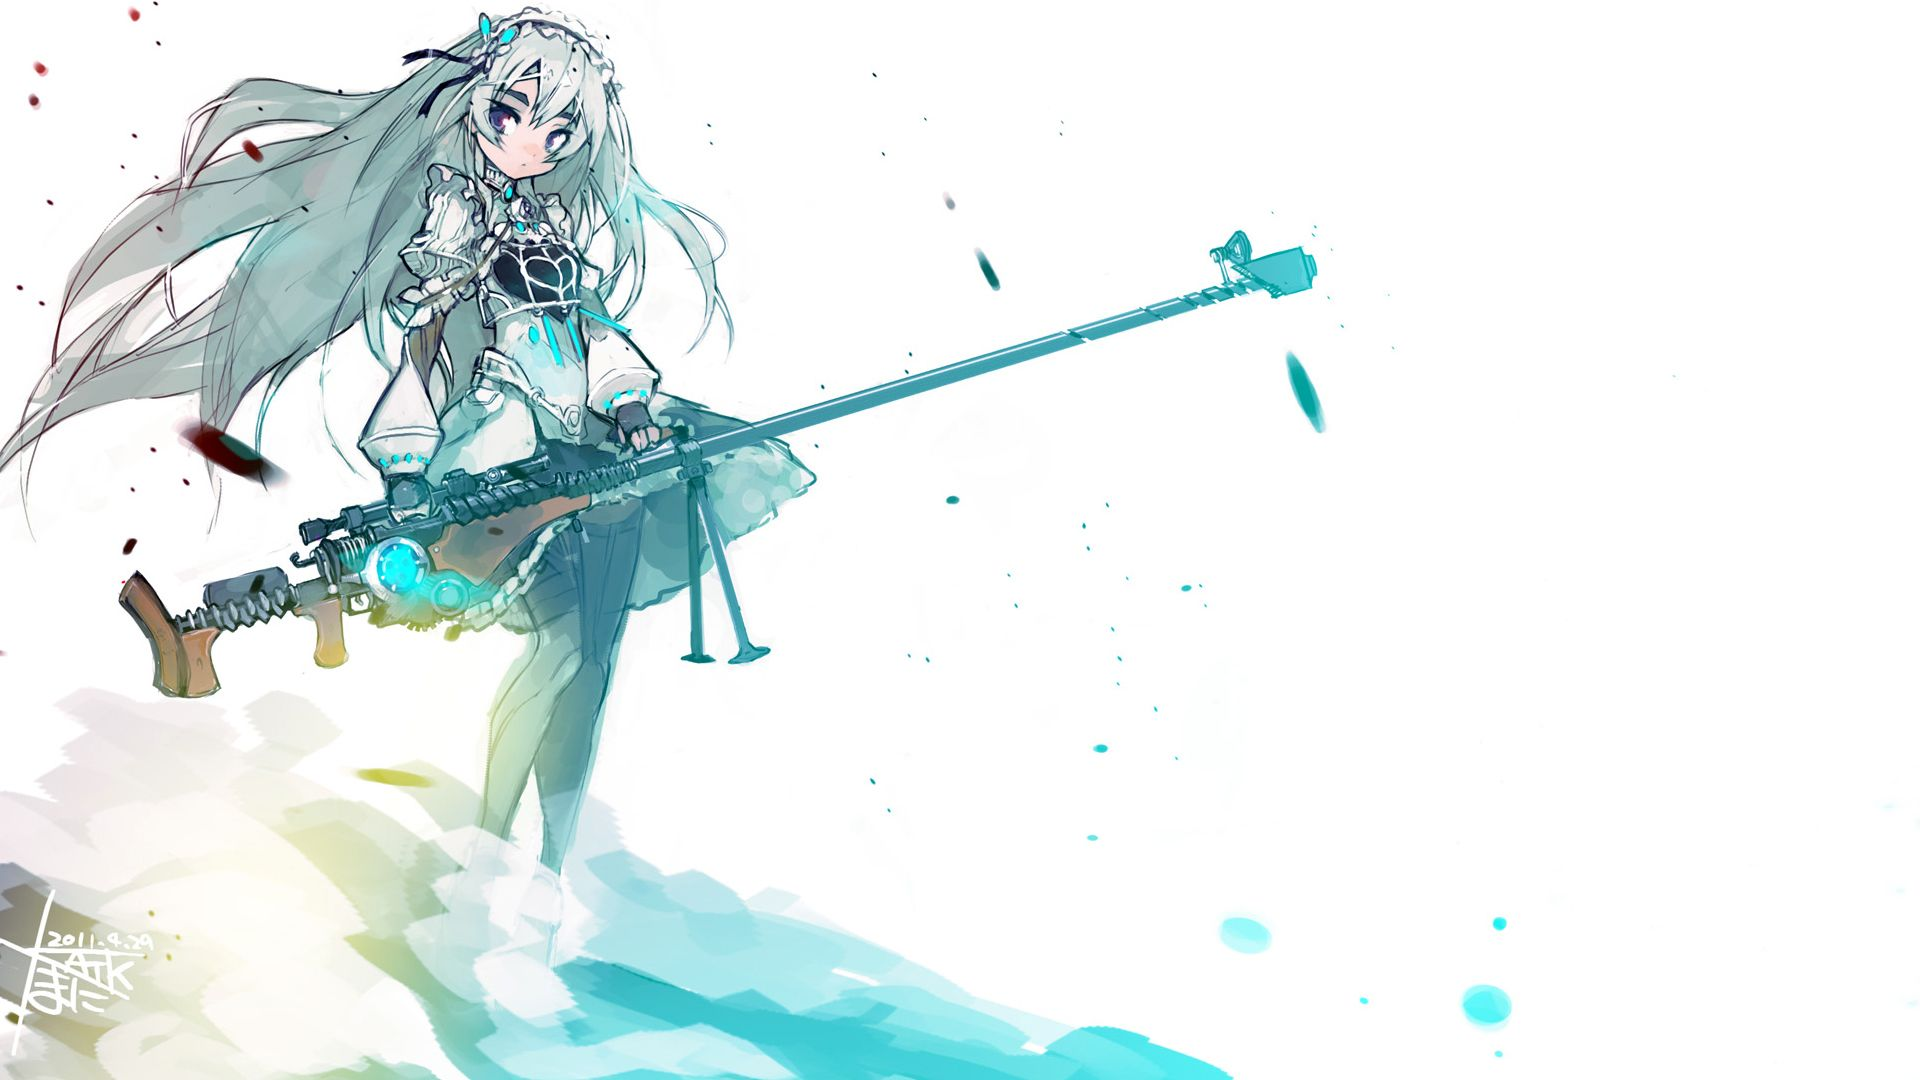 Anime Hitsugi No Chaika Wallpaper Chaika the coffin princess 1920x1080